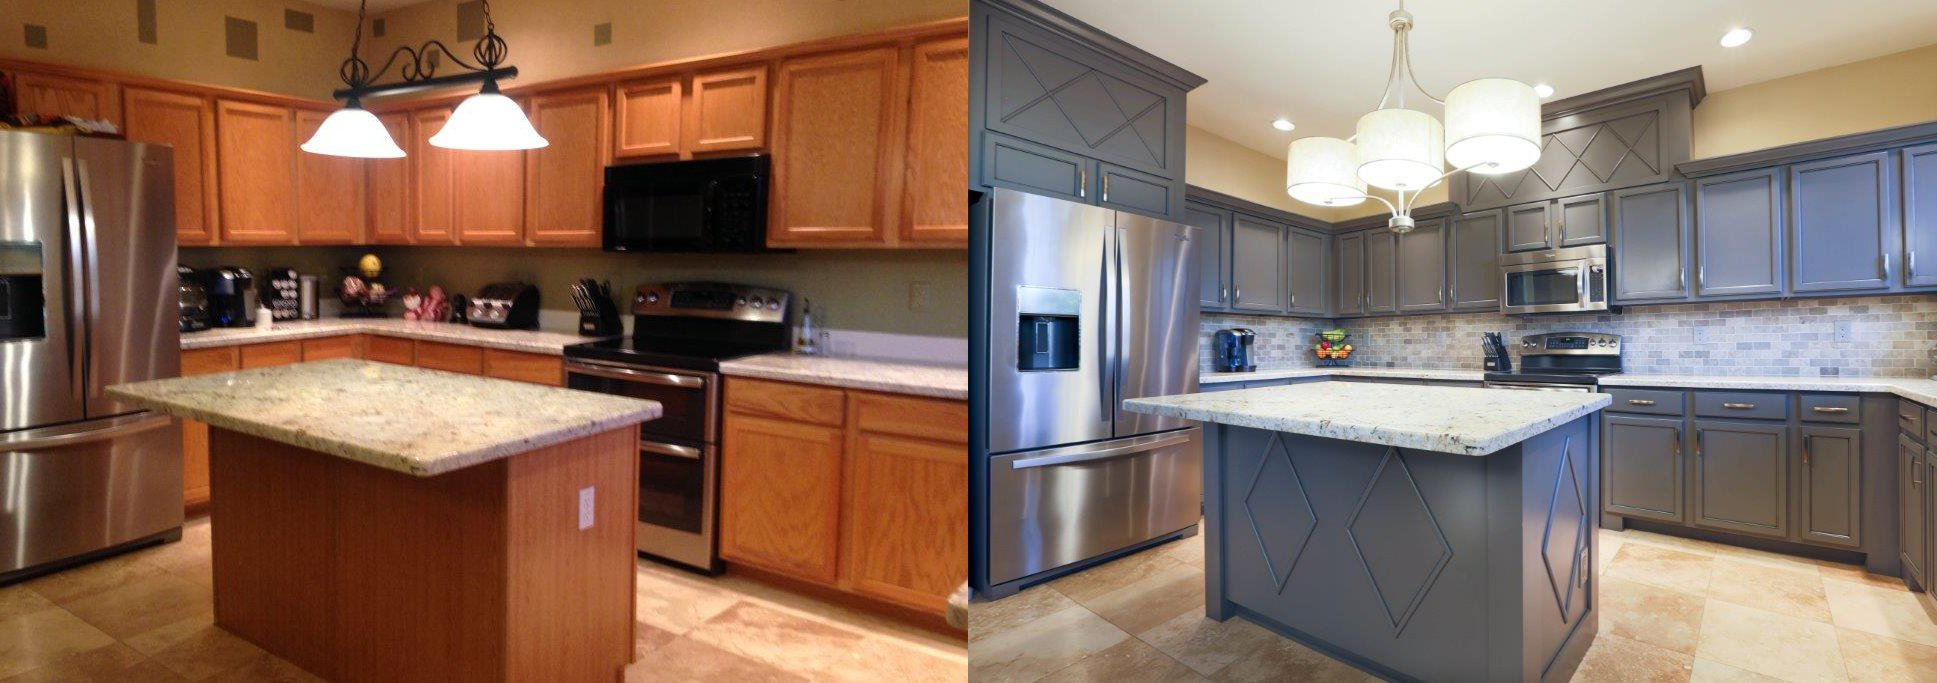 How Much Does Kitchen Cabinet Refinishing Cost?